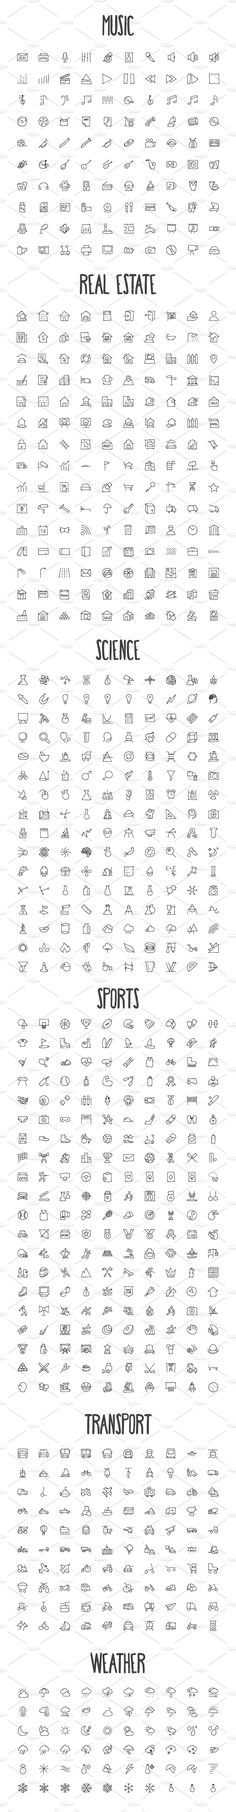 2440 Hand Drawn Doodle Icons Bundle by Creative Stall on @creativemarket